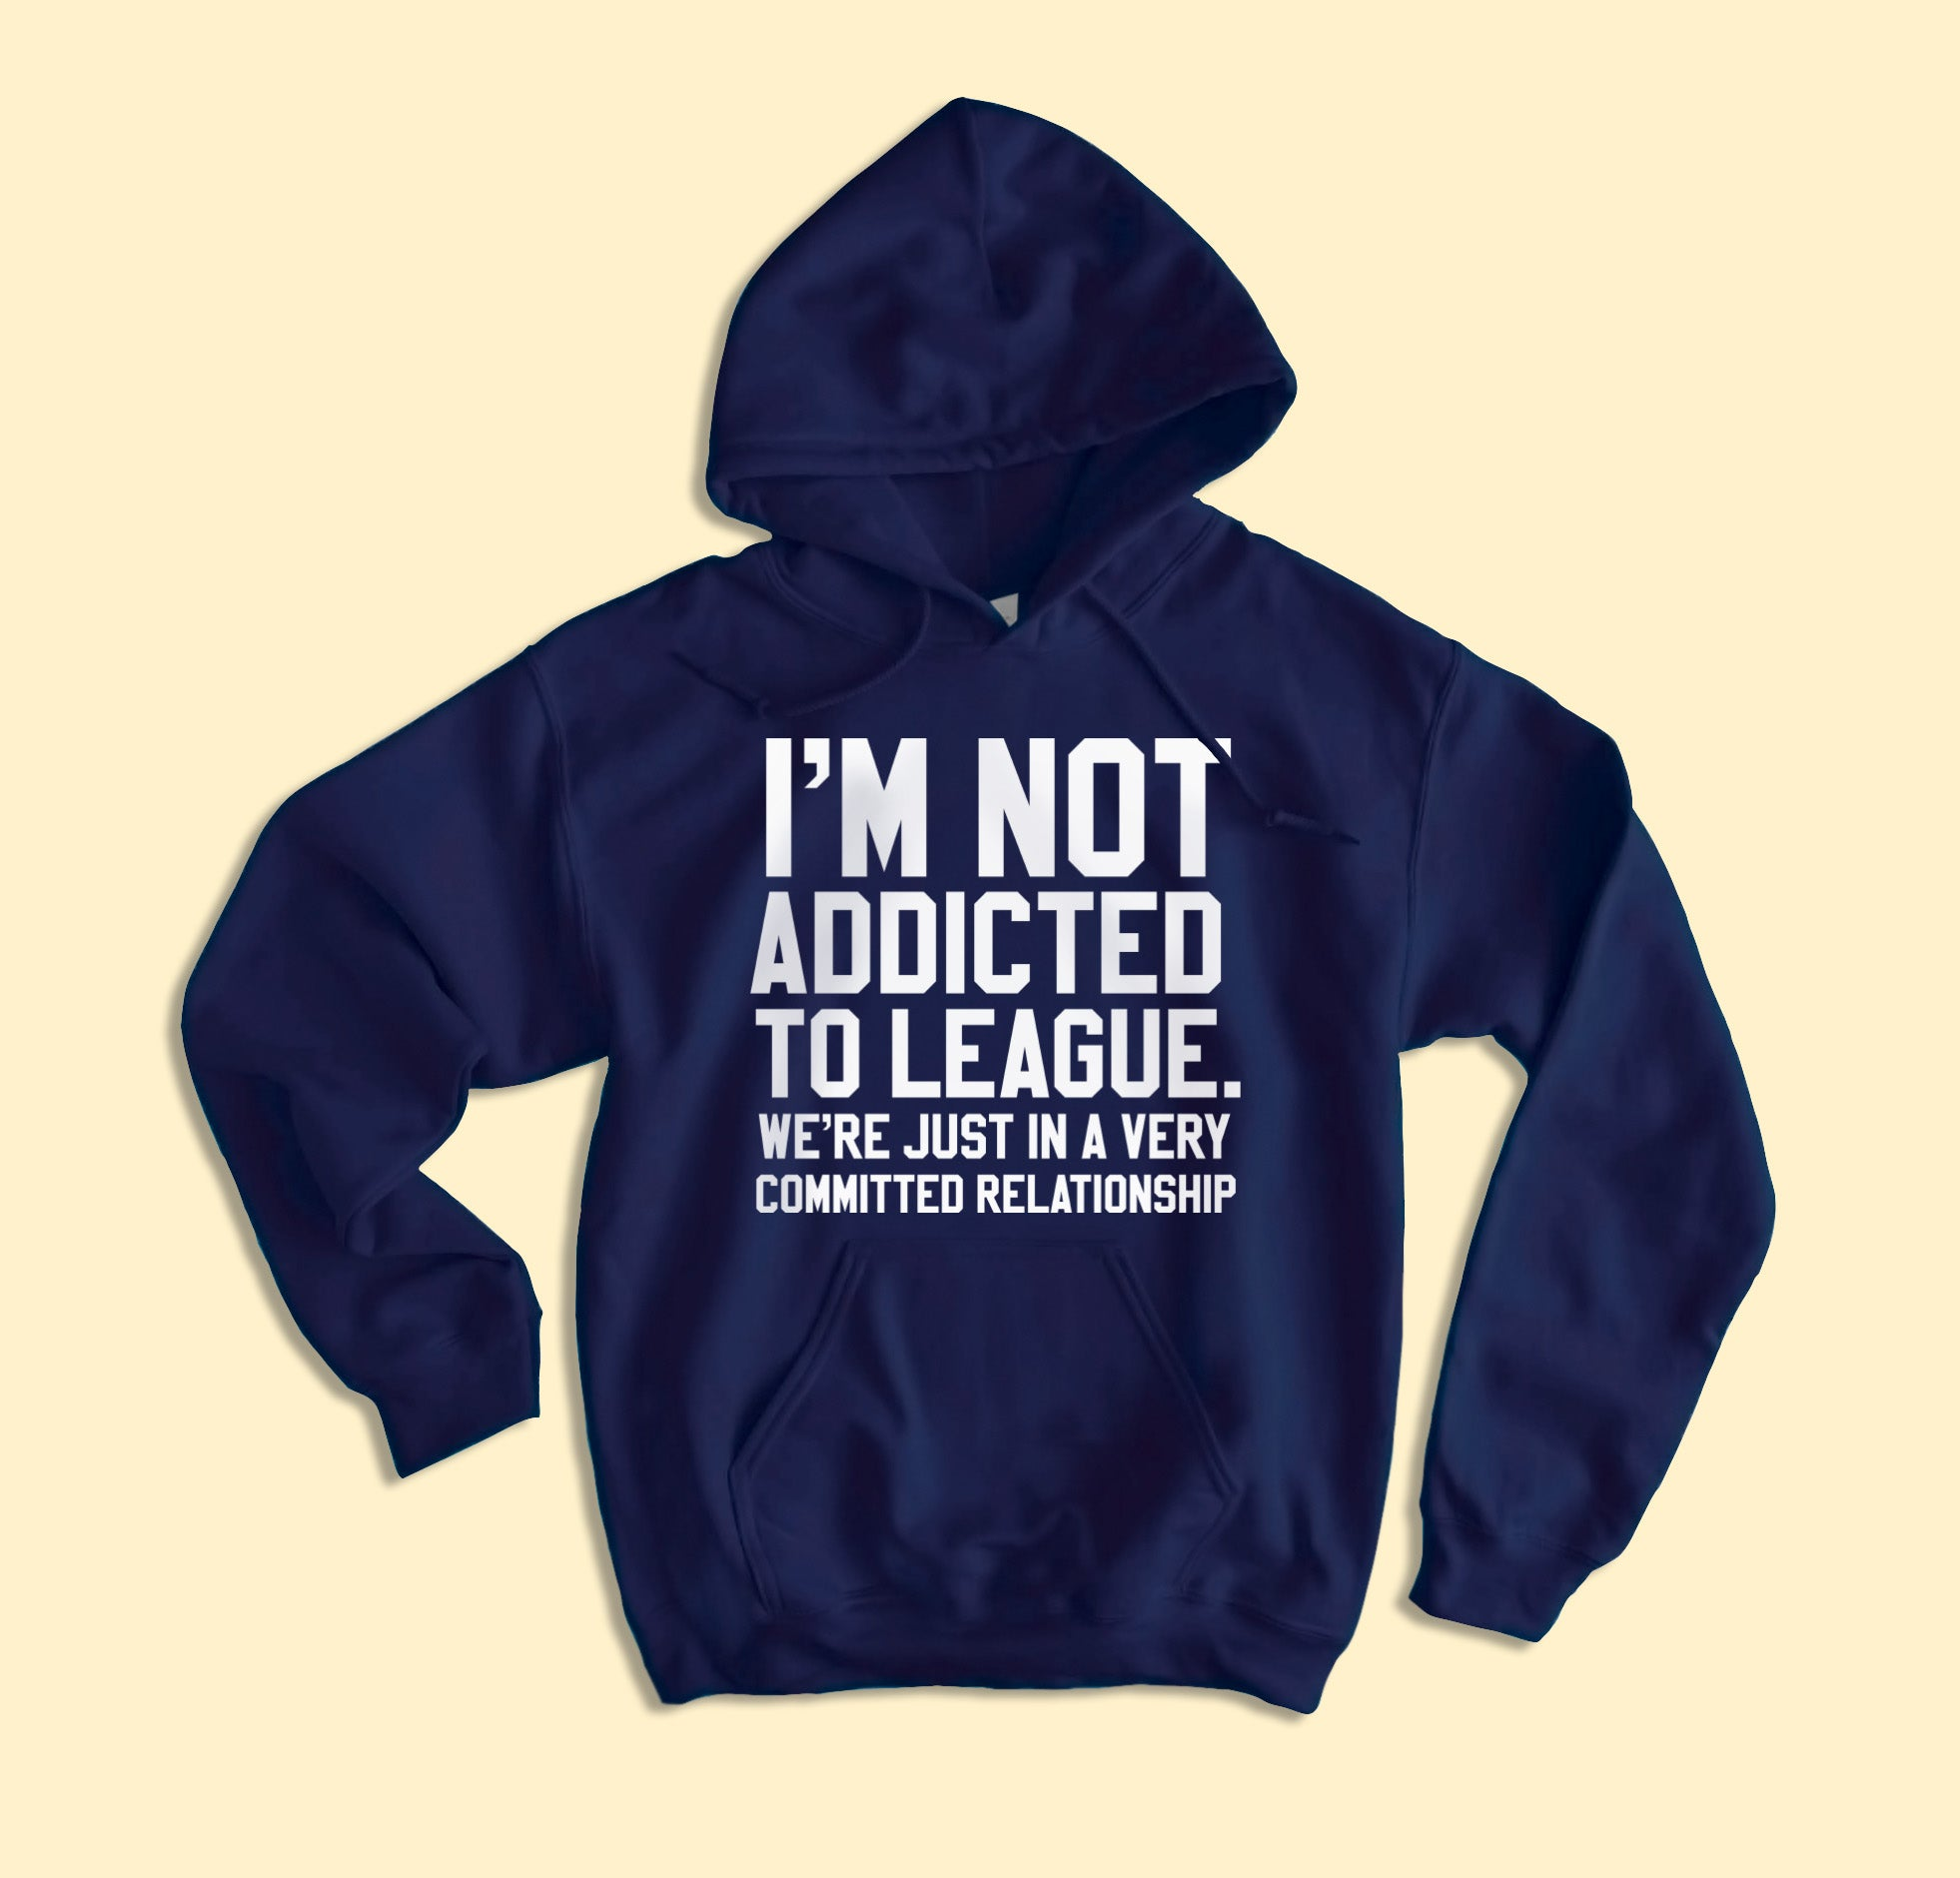 I'm Not Addicted To League Hoodie